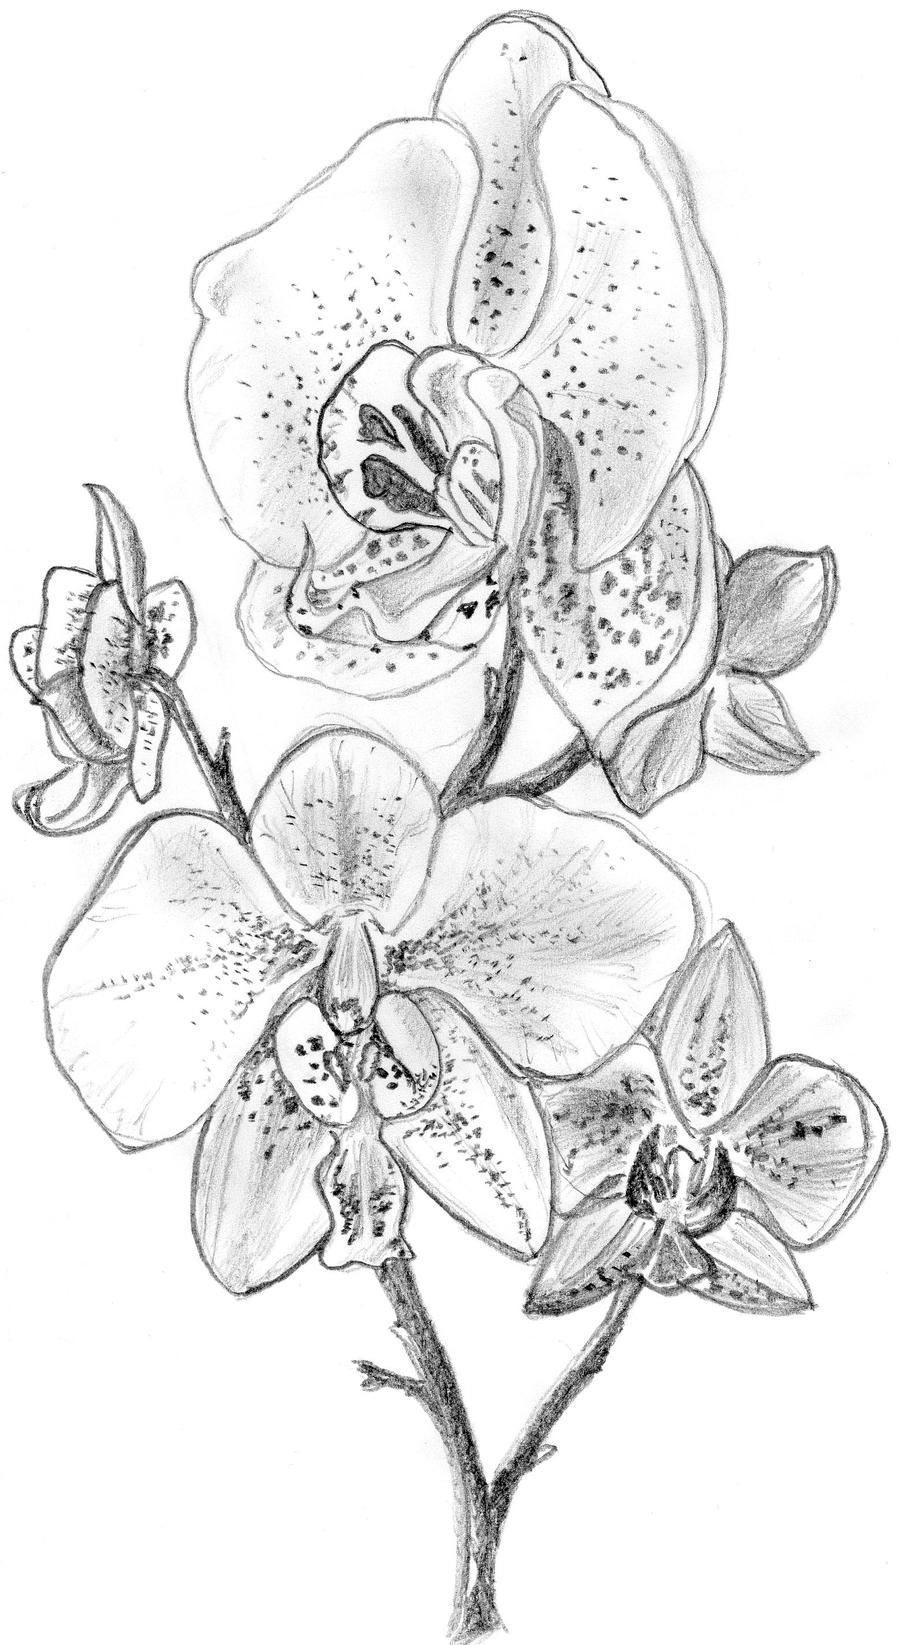 orchid by irongarlic traditional art drawings other 2010 2015 ...: irongarlic.deviantart.com/art/Orchid-164697029